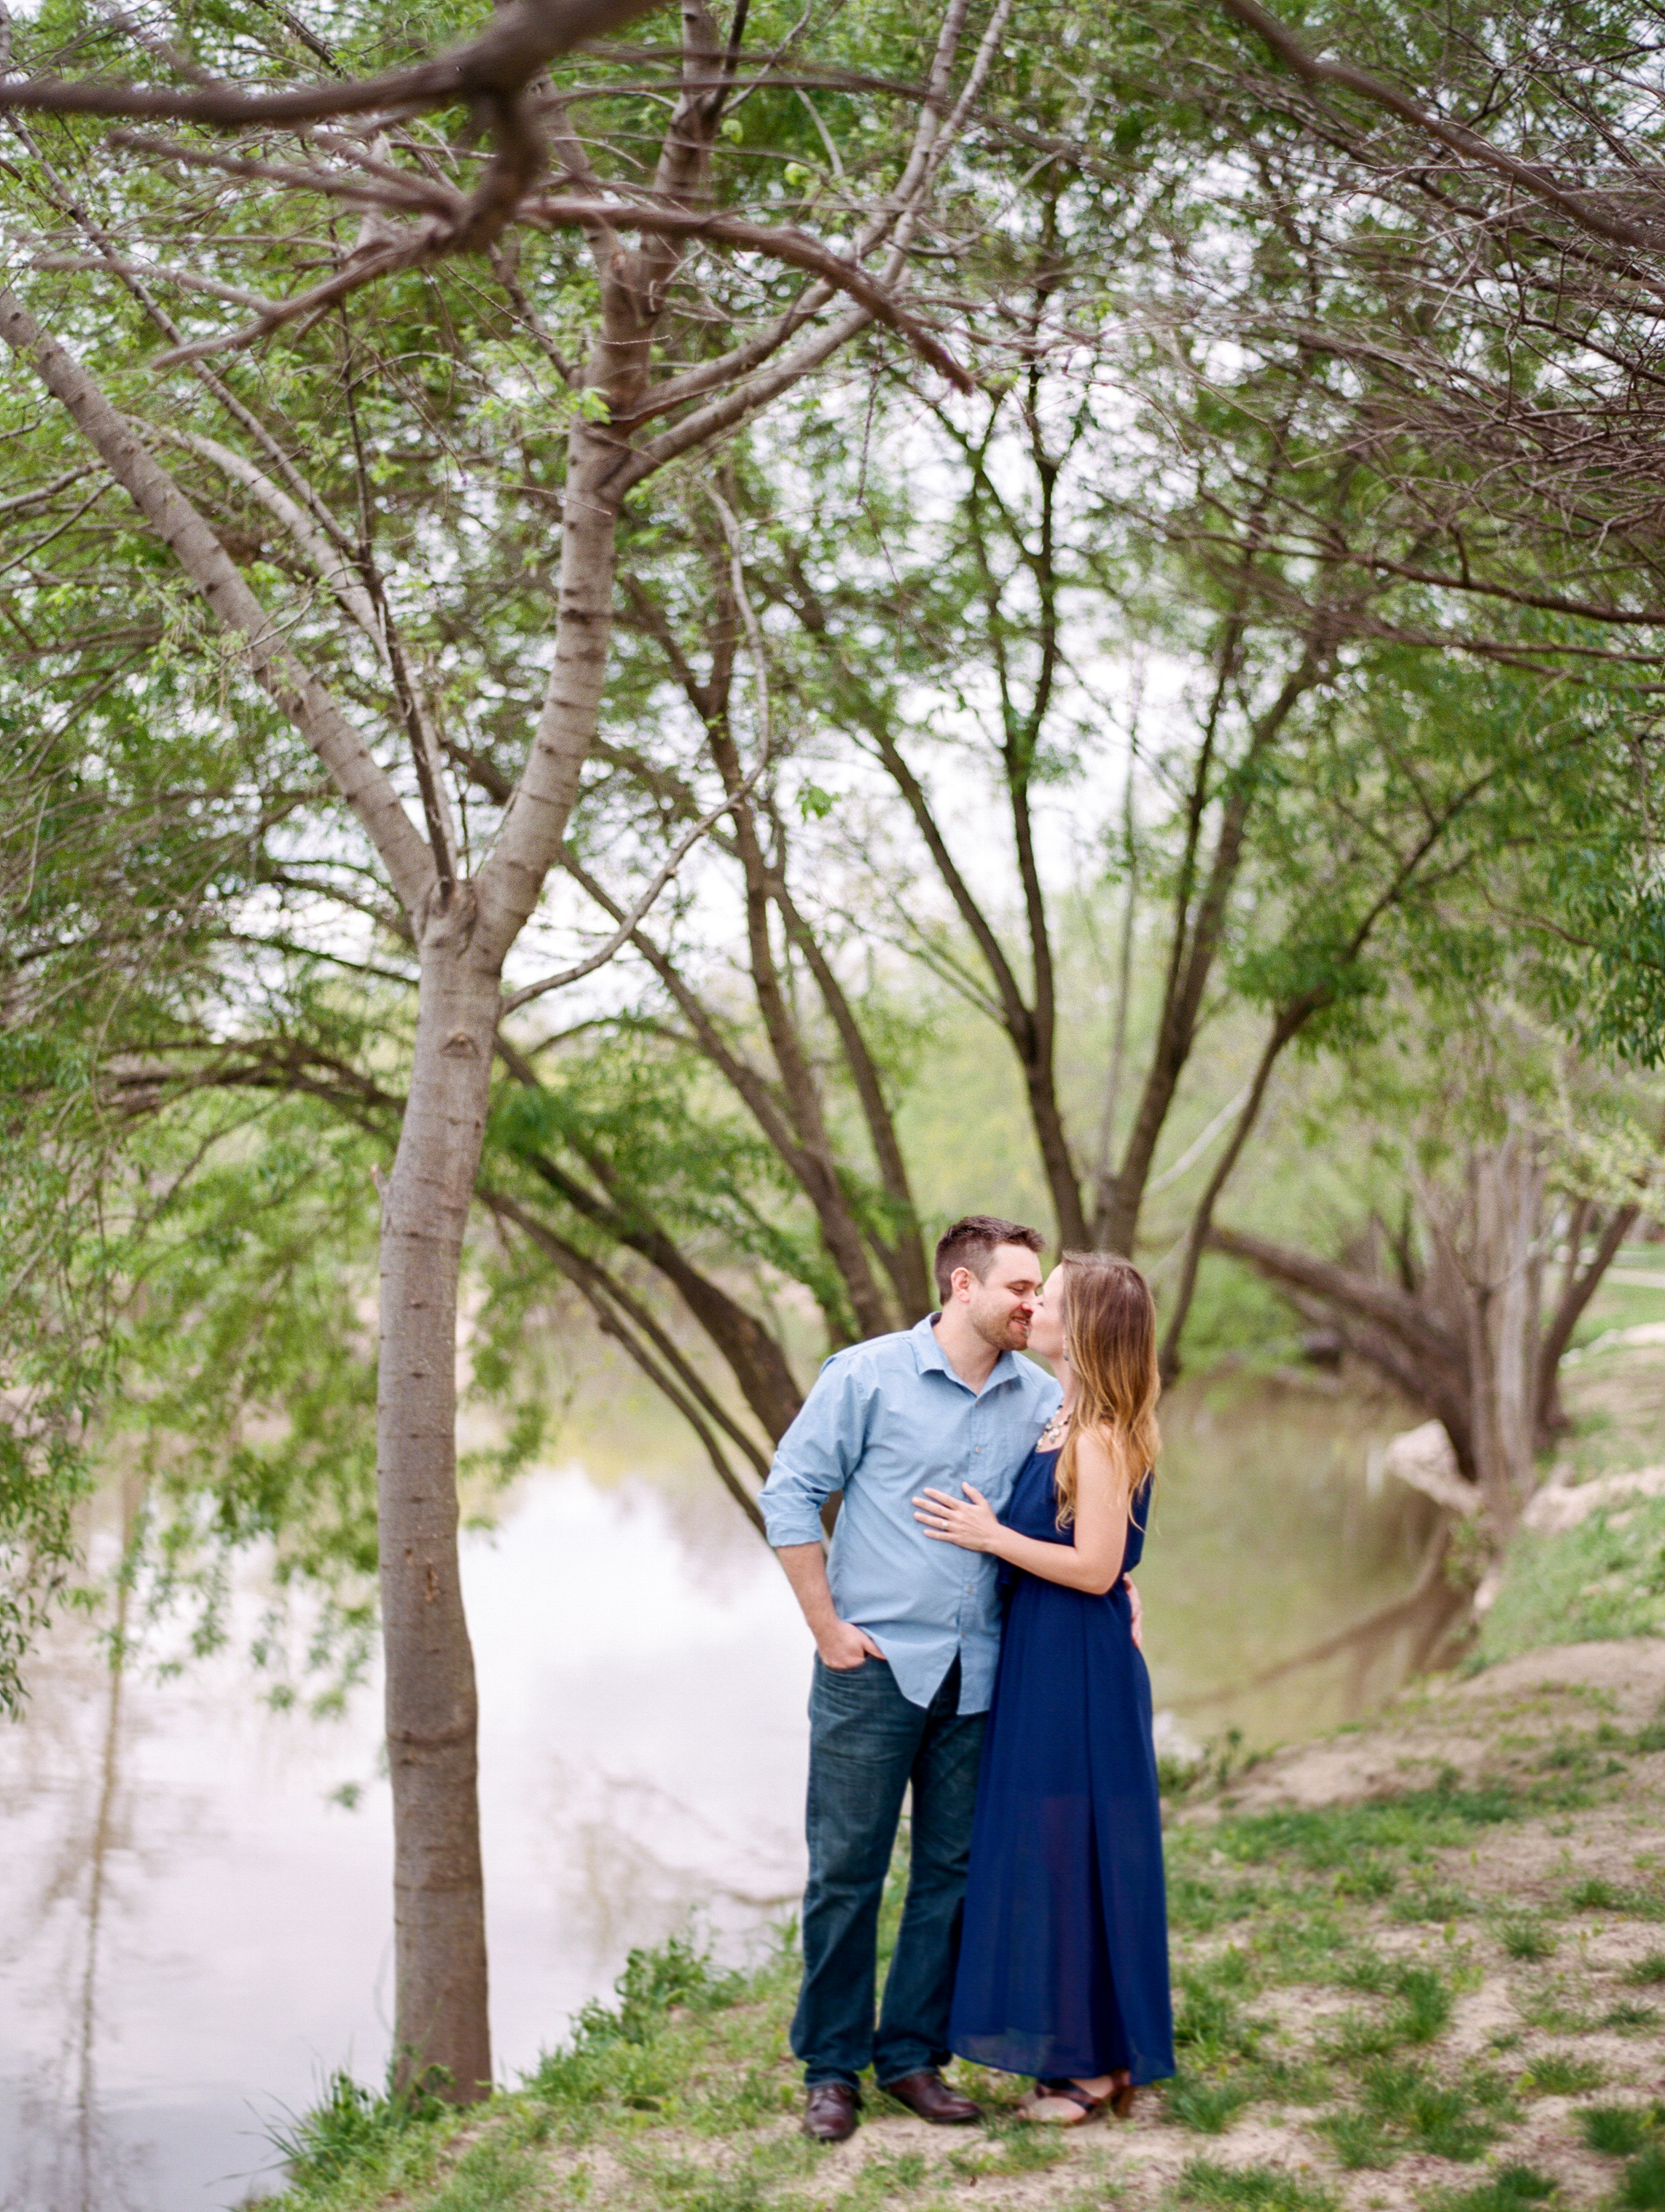 Dana Fernandez Photography Houston Wedding Photographer Engagements Film Destination Texas-9.jpg